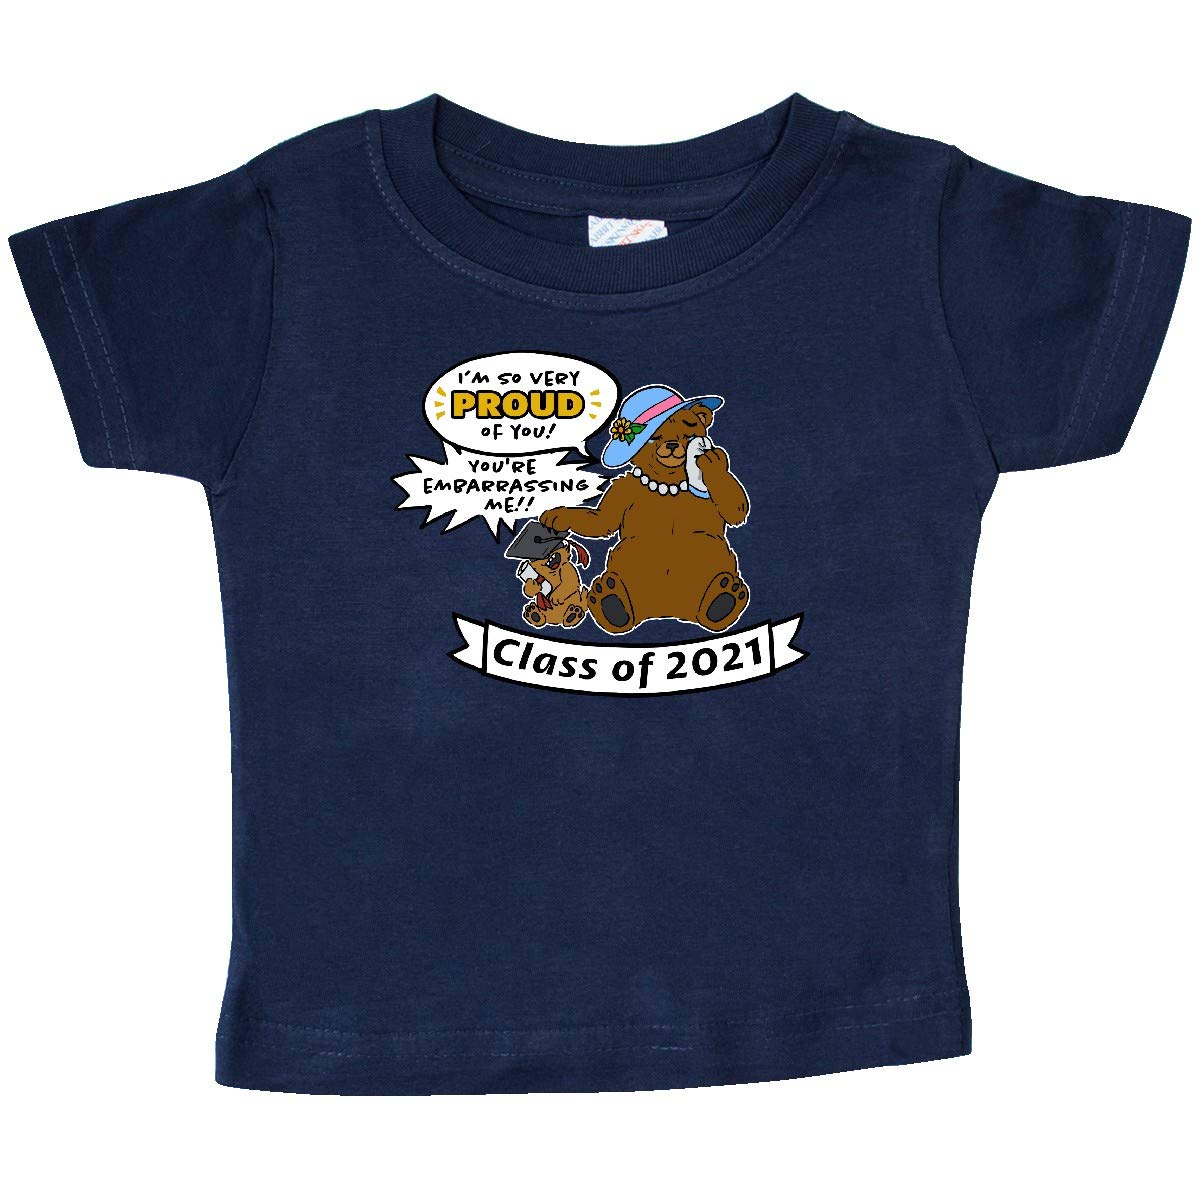 Youre Embarrassing Me Class of 2021 Baby T-Shirt inktastic Im So Proud of You